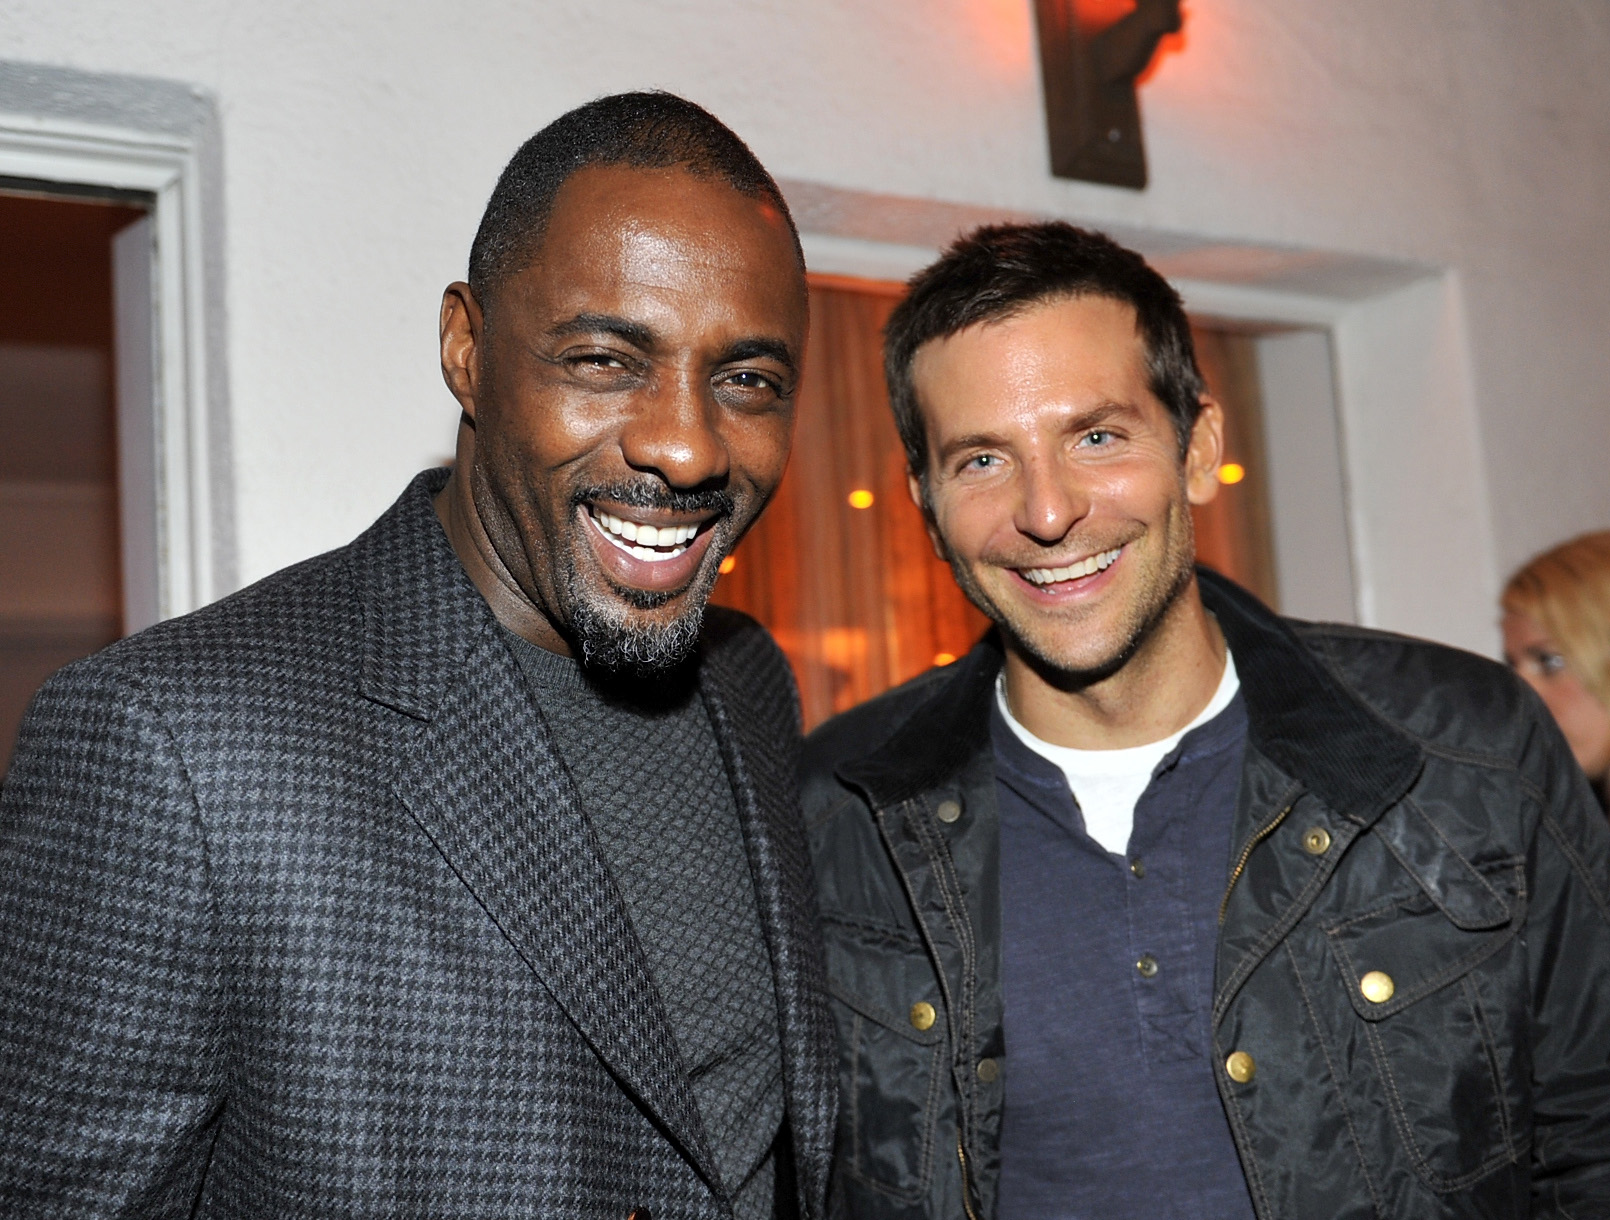 Bradley Cooper and Idris Elba made a handsome pair.